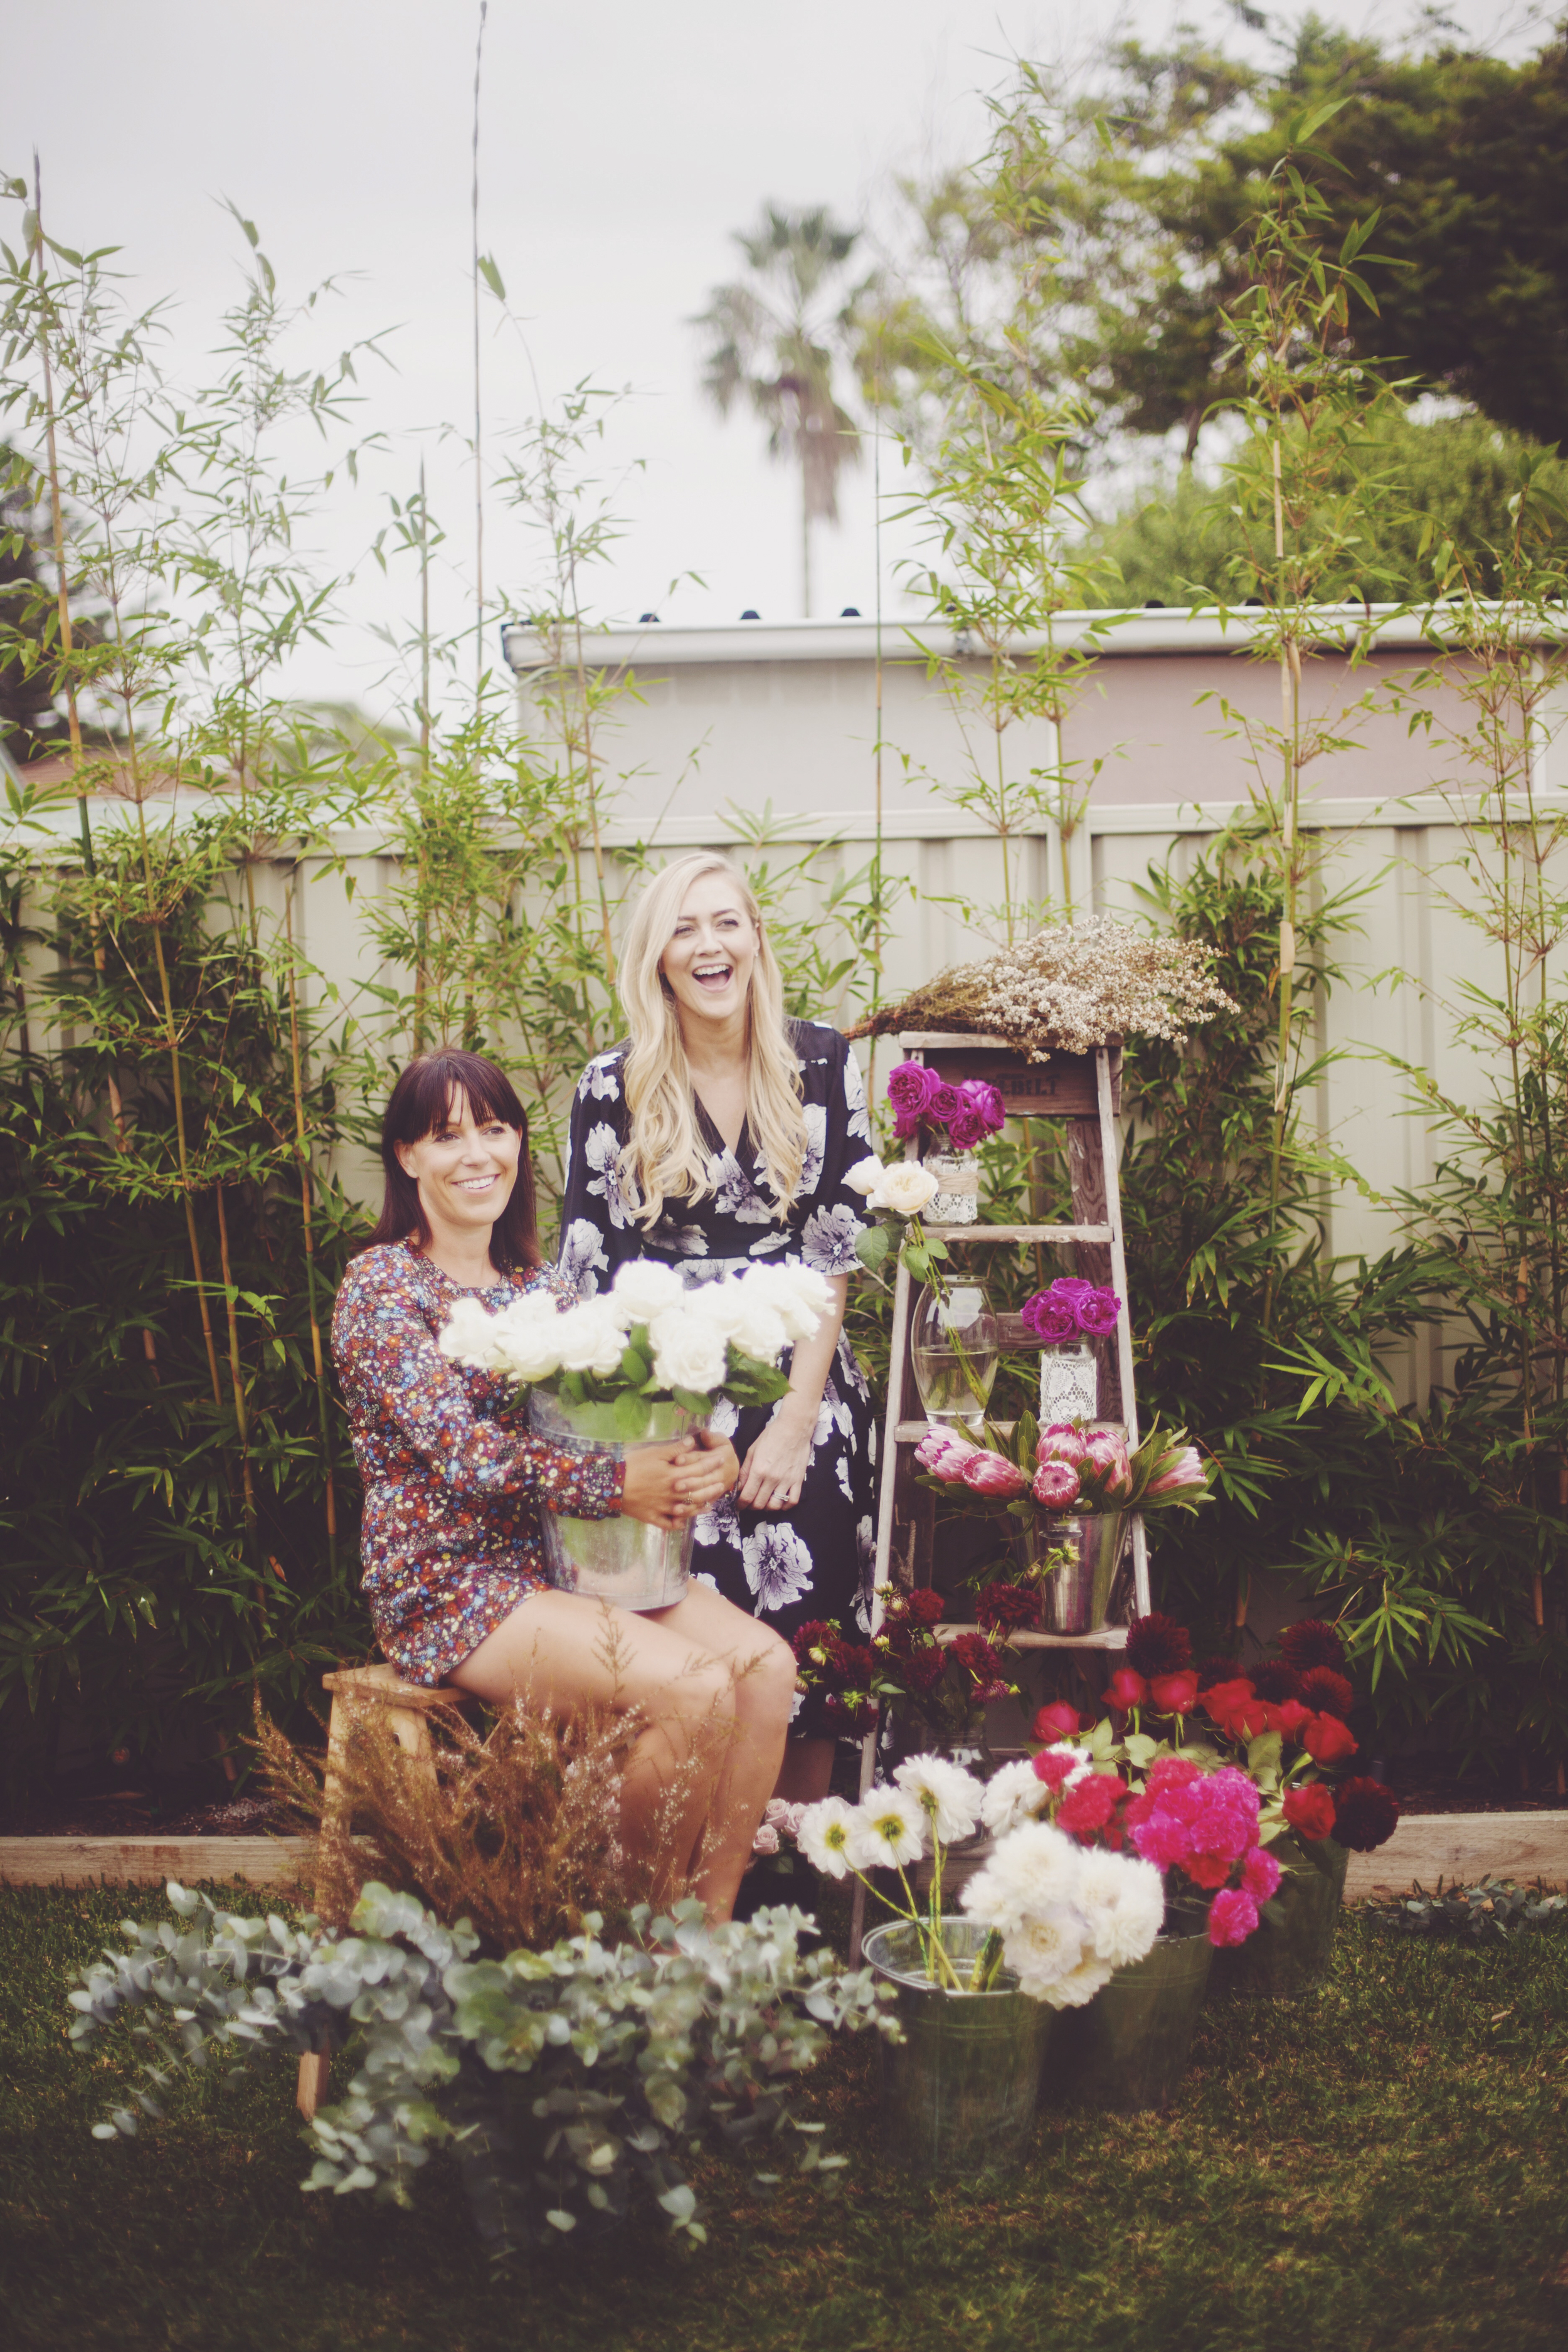 floral studio portrait shoots